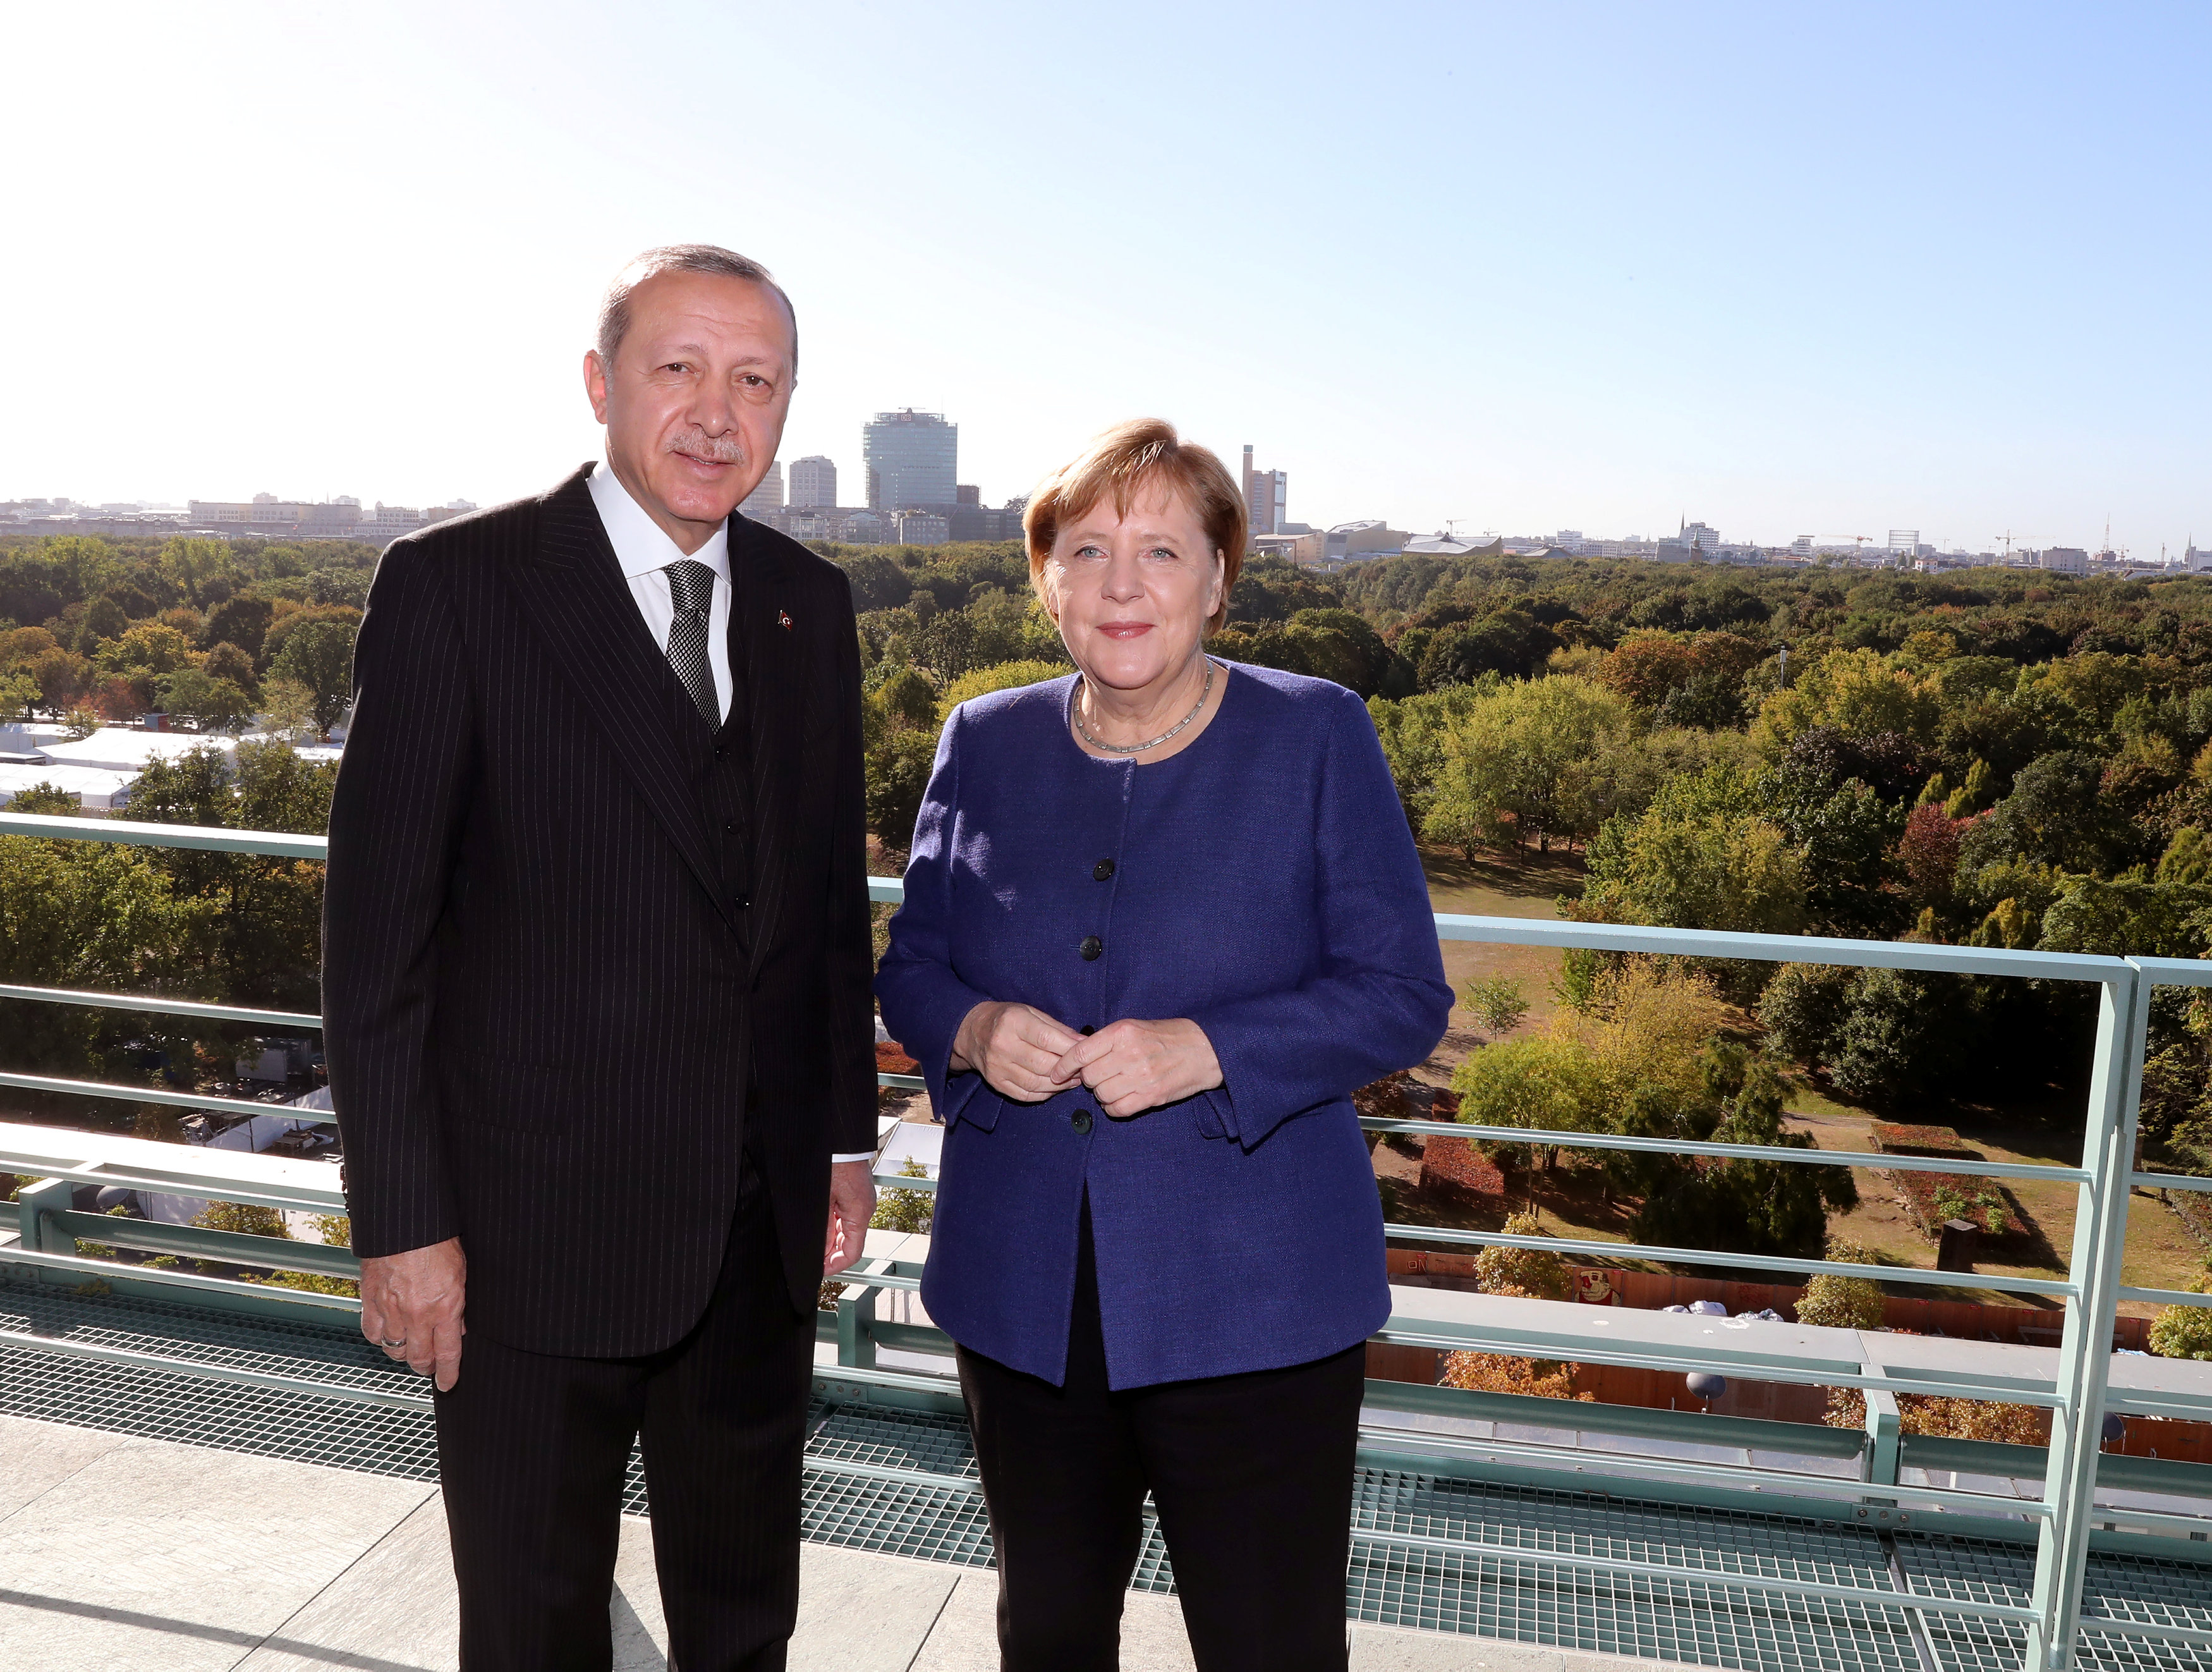 Germany: Cologne on lockdown as Erdogan wraps up ill-tempered visit to Germany